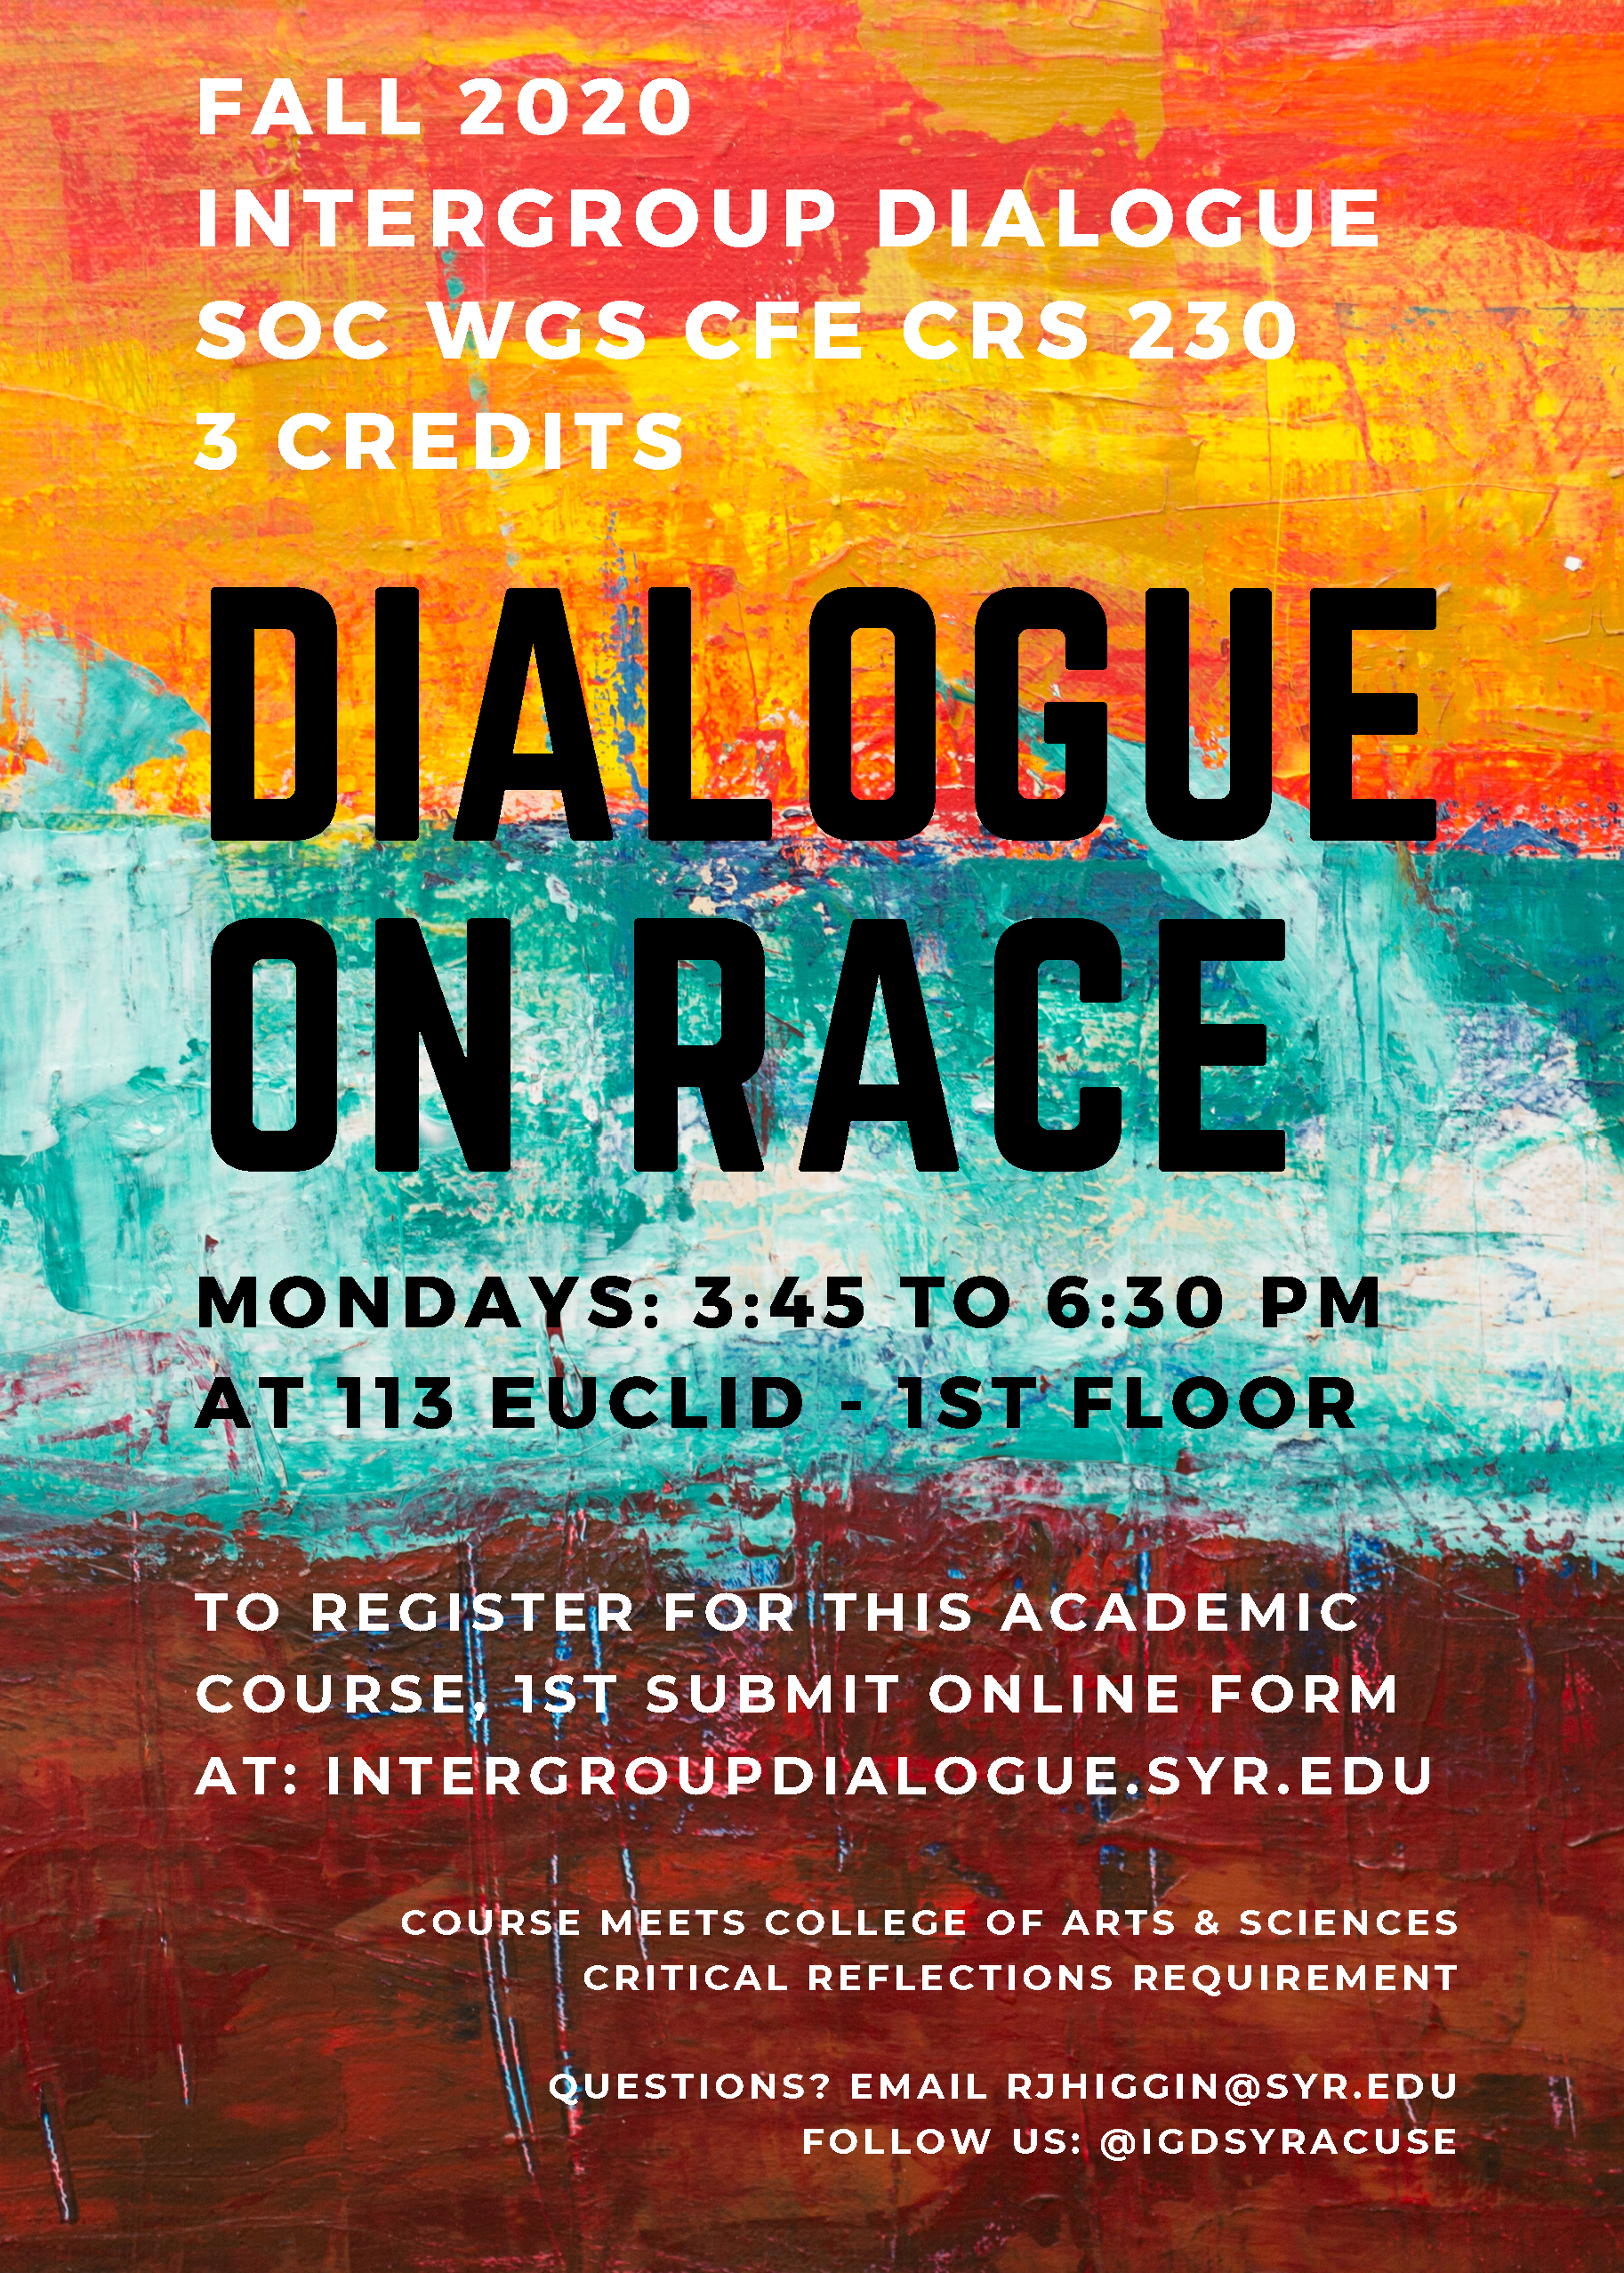 SOC WGS CFE CRS 230 3 credits Dialogue on Race & Ethnicity on Mondays 3:45 to 6:30 pm at 113 Euclid first floor To register, first submit an online form at: intergroupdialogue.syr.edu Questions? rjhiggin@syr.edu Follow us: @igdsyracuse